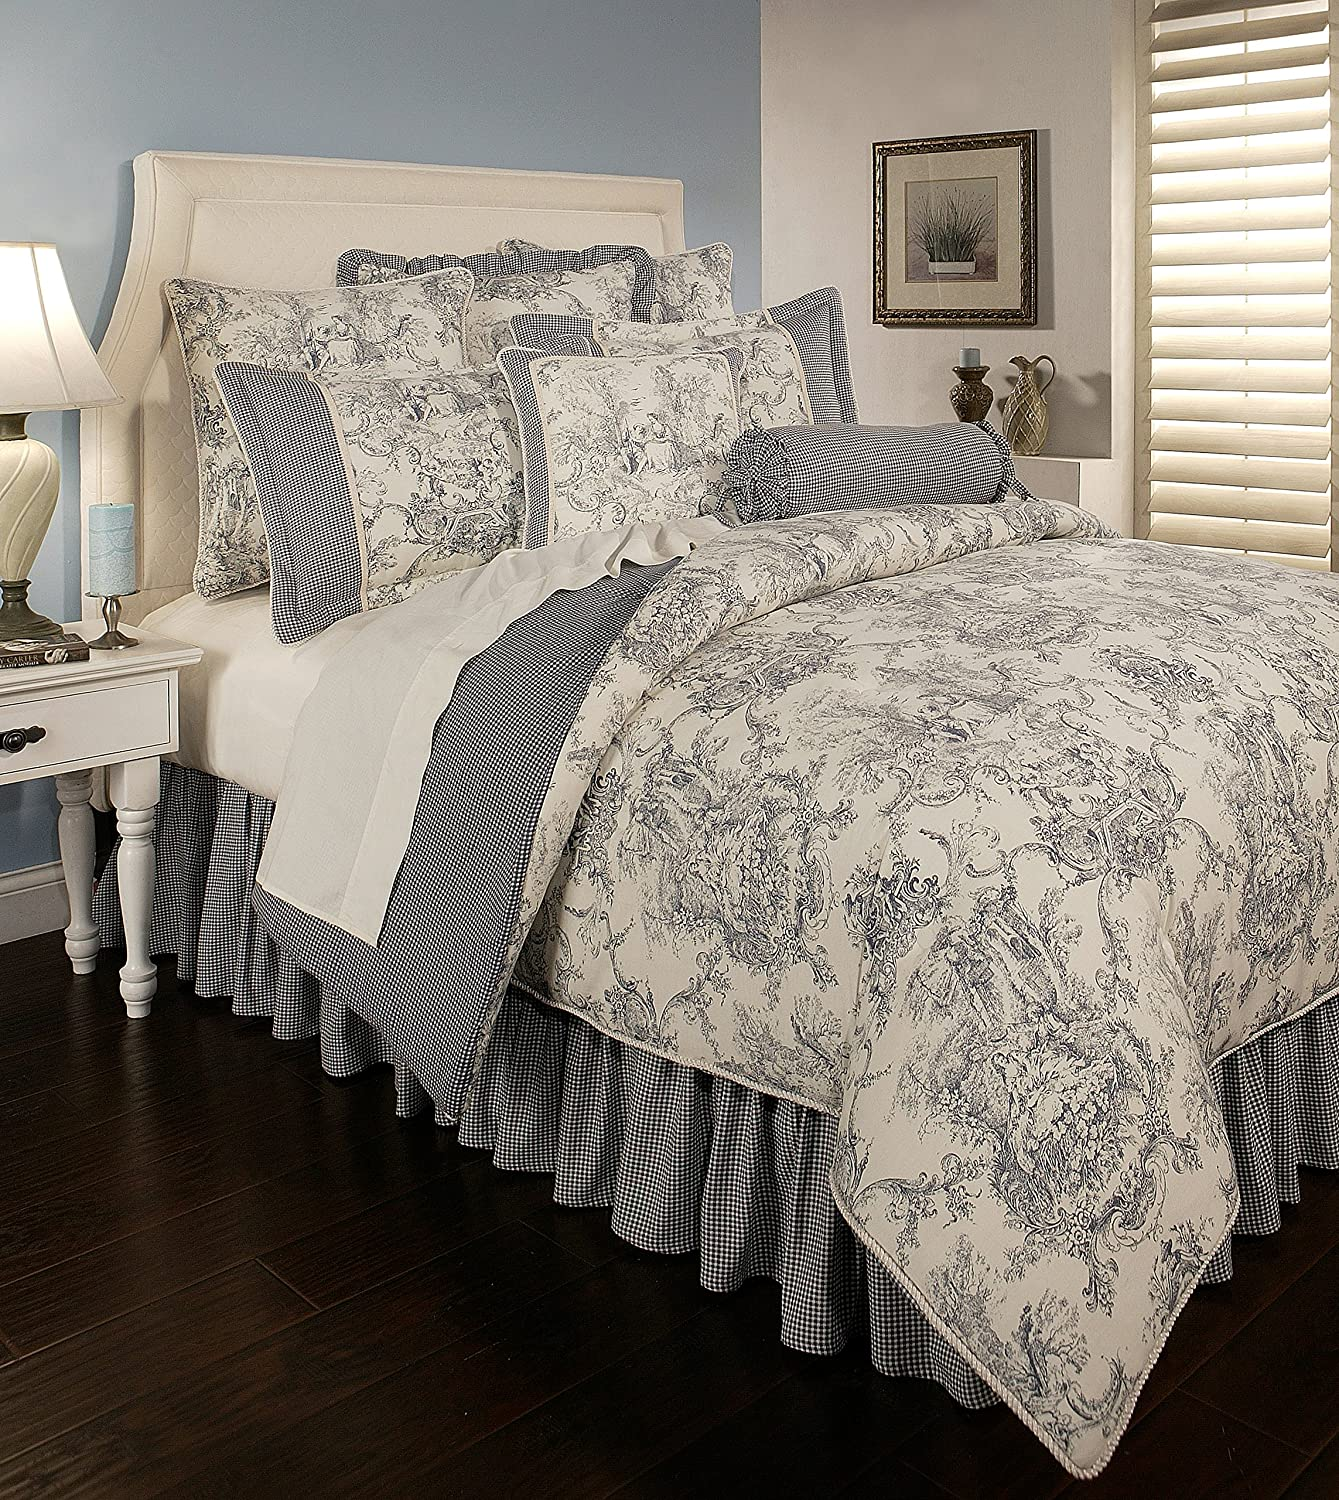 Sherry Kline Country Toile Blue Max 62% OFF 6-Piece Comforter Set Queen Sales of SALE items from new works